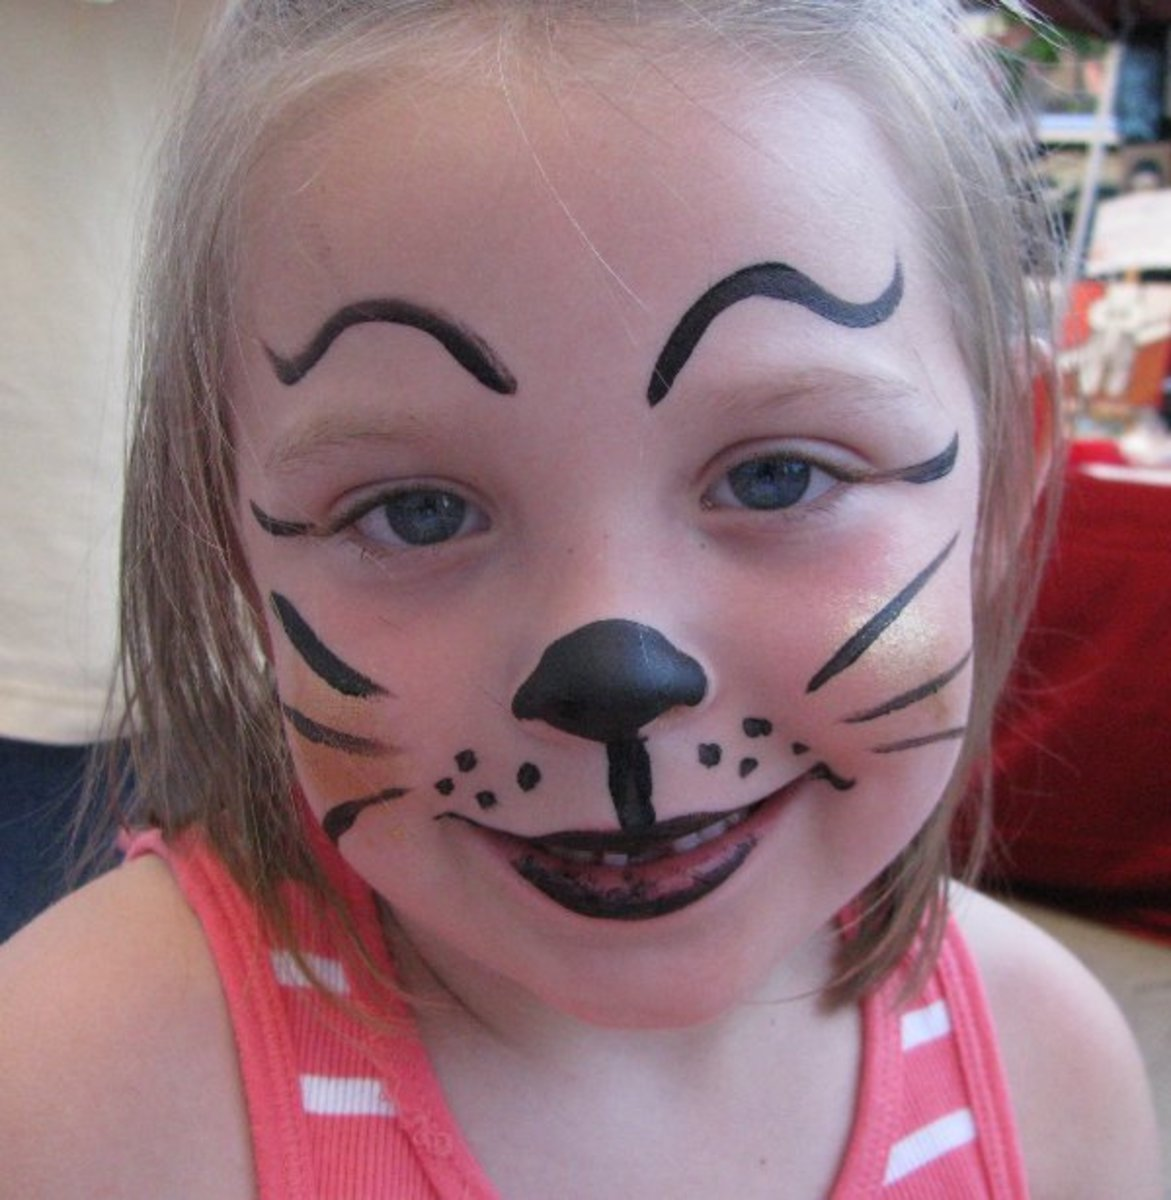 10 Kids Face Painting Ideas for Halloween - Easy Halloween Faces